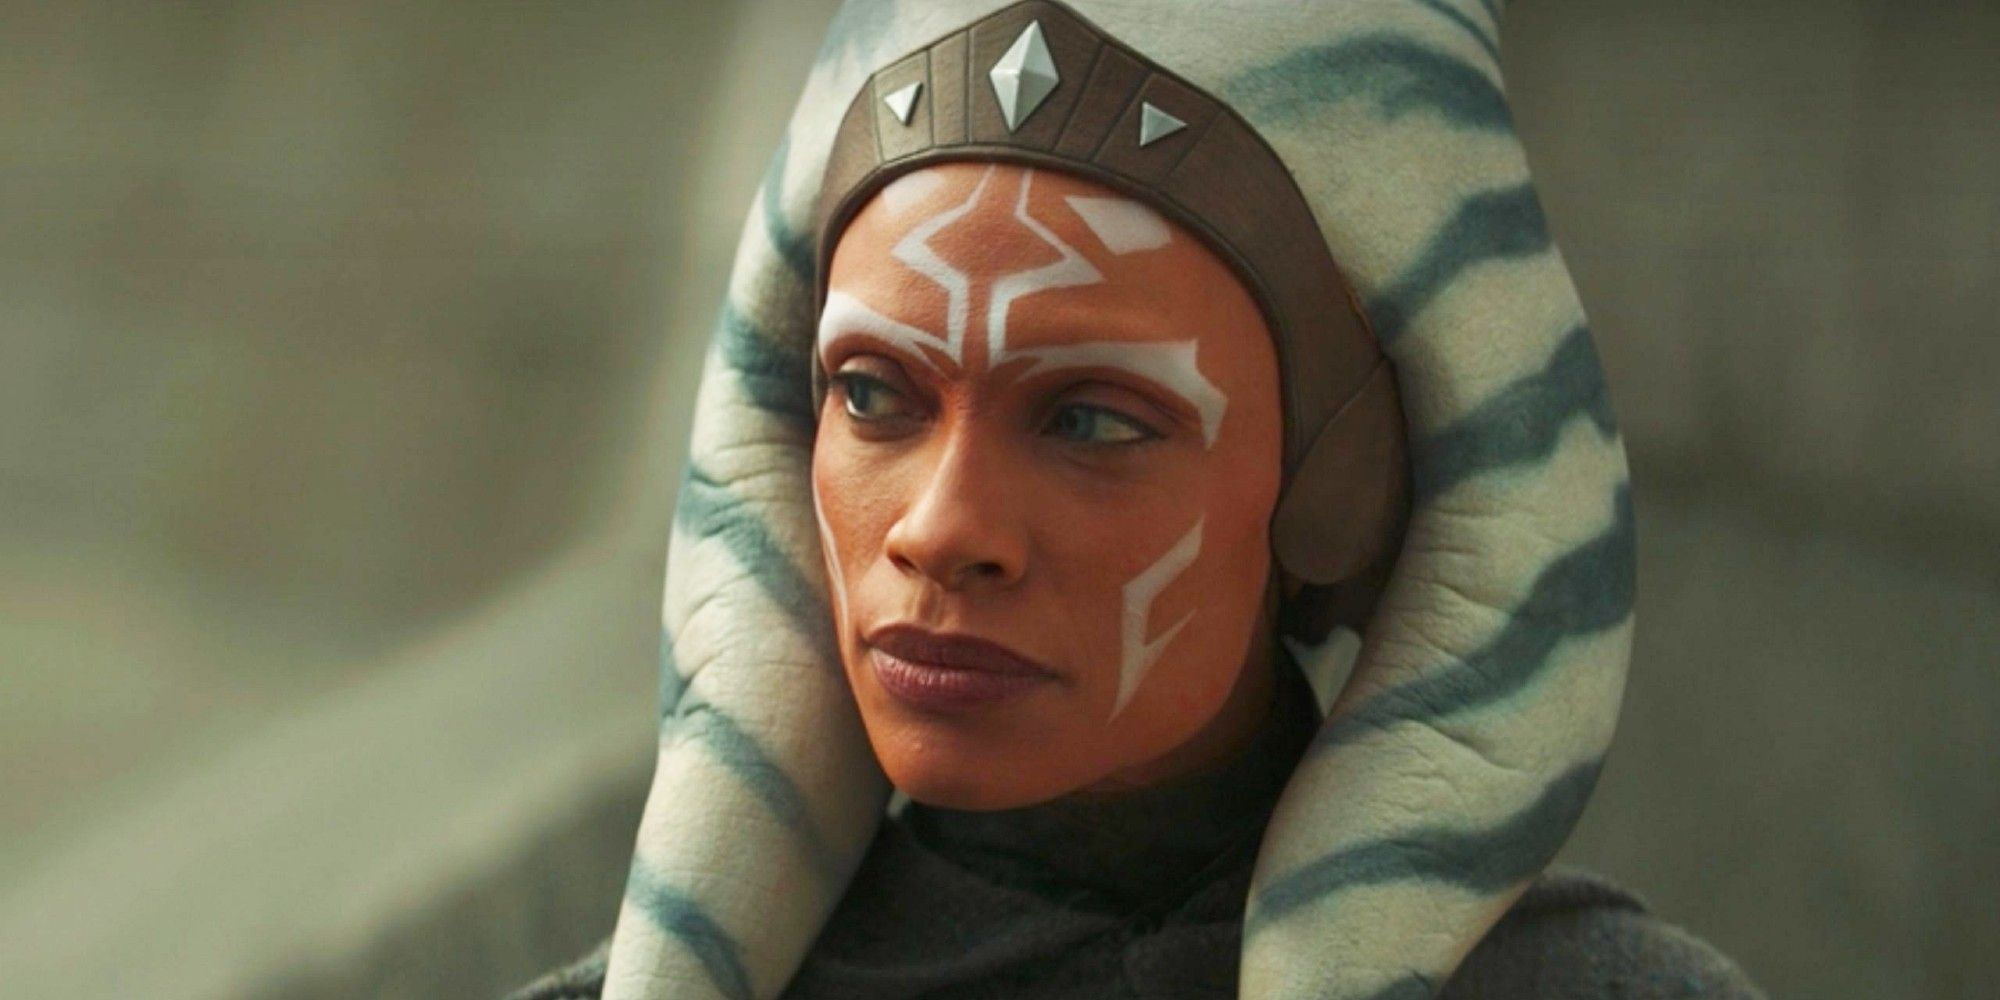 The Mandalorian: Rosario Dawson Comments Following Ahsoka Tano's Debut